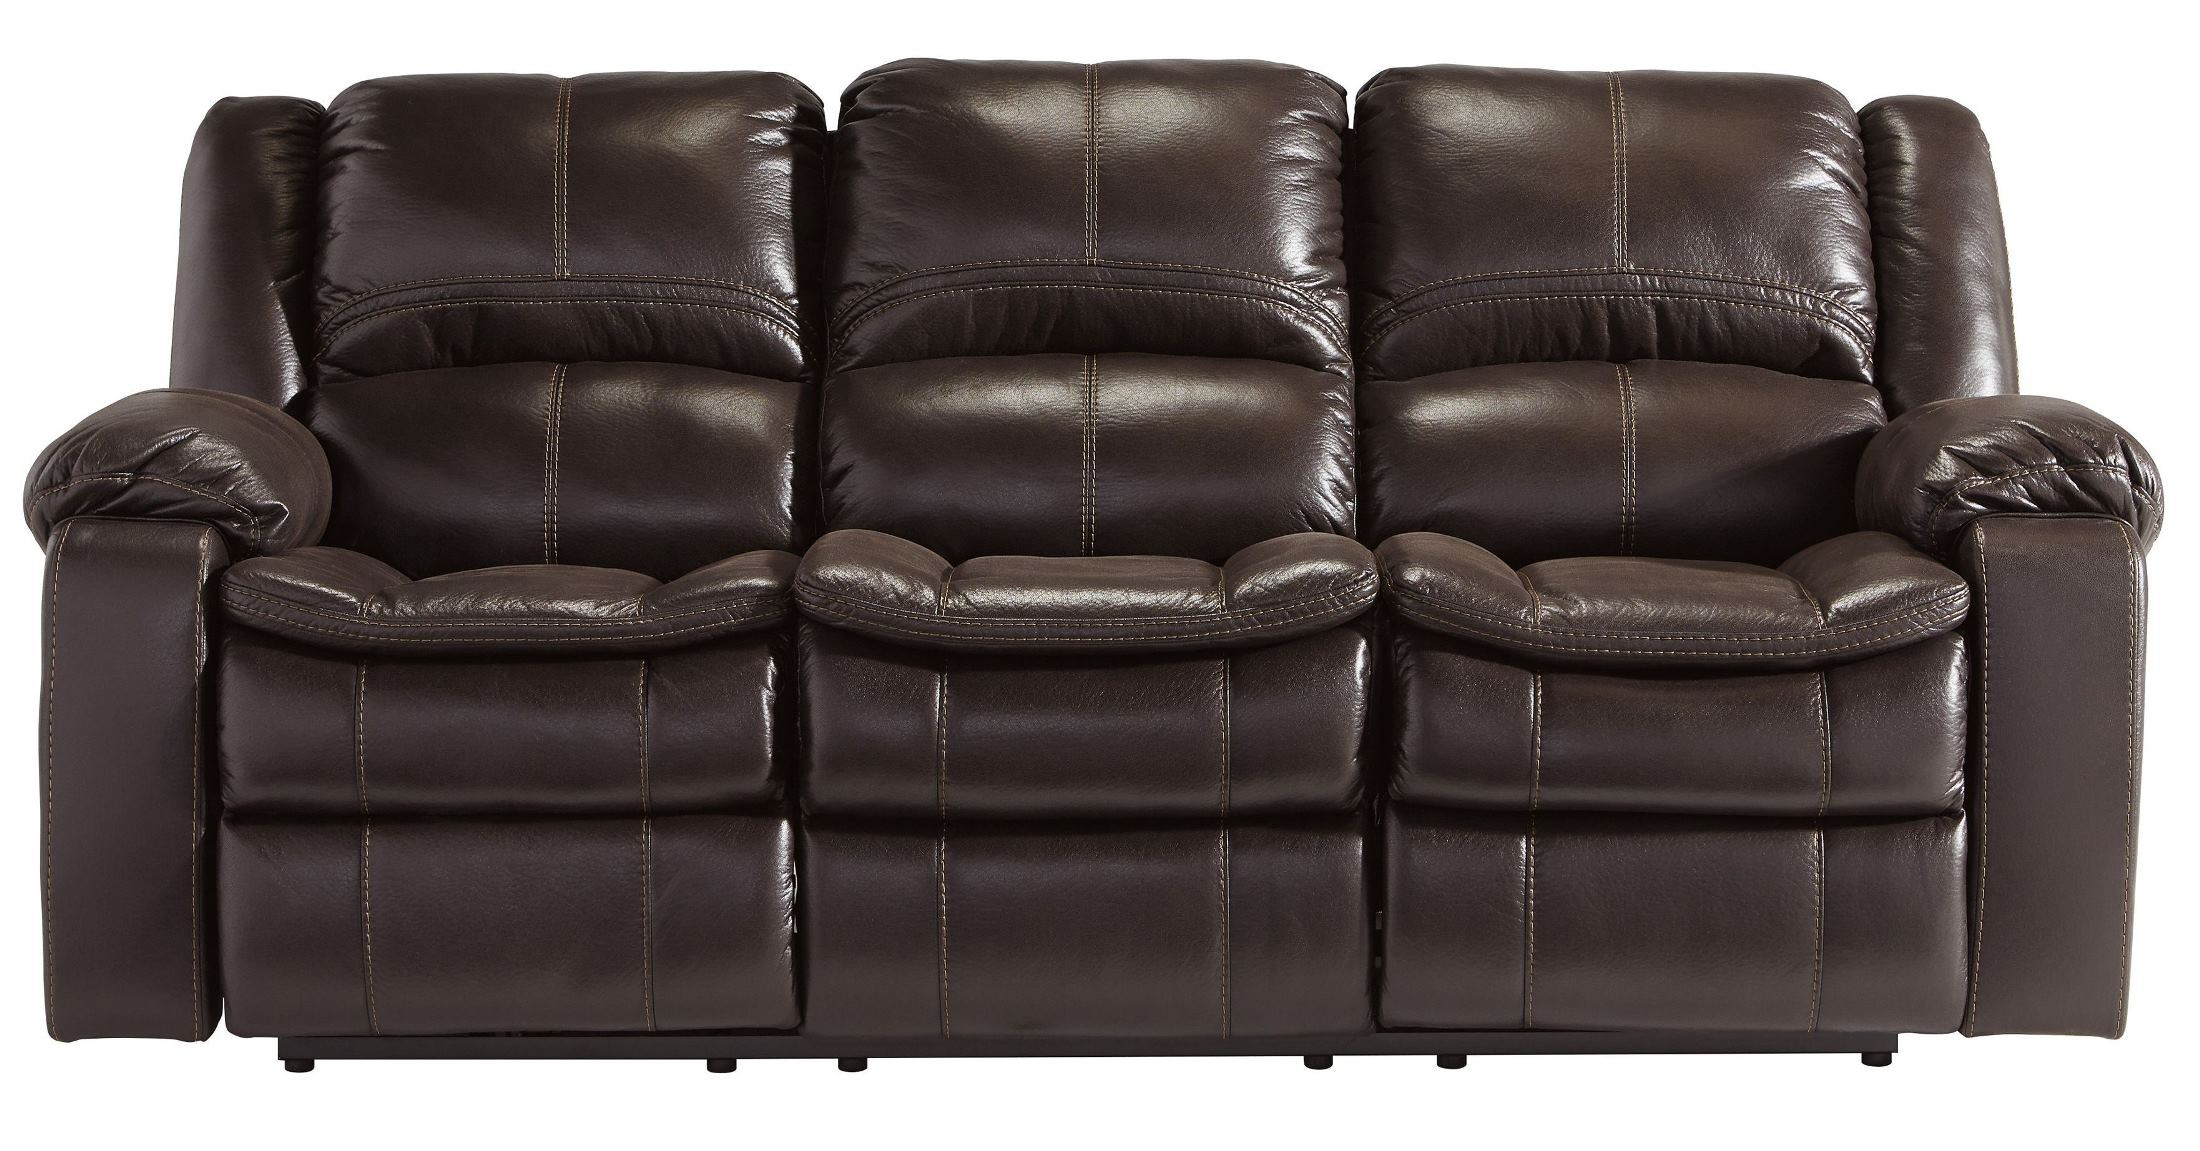 Long Knight Brown Reclining Sofa 8890588 Ashley Furniture